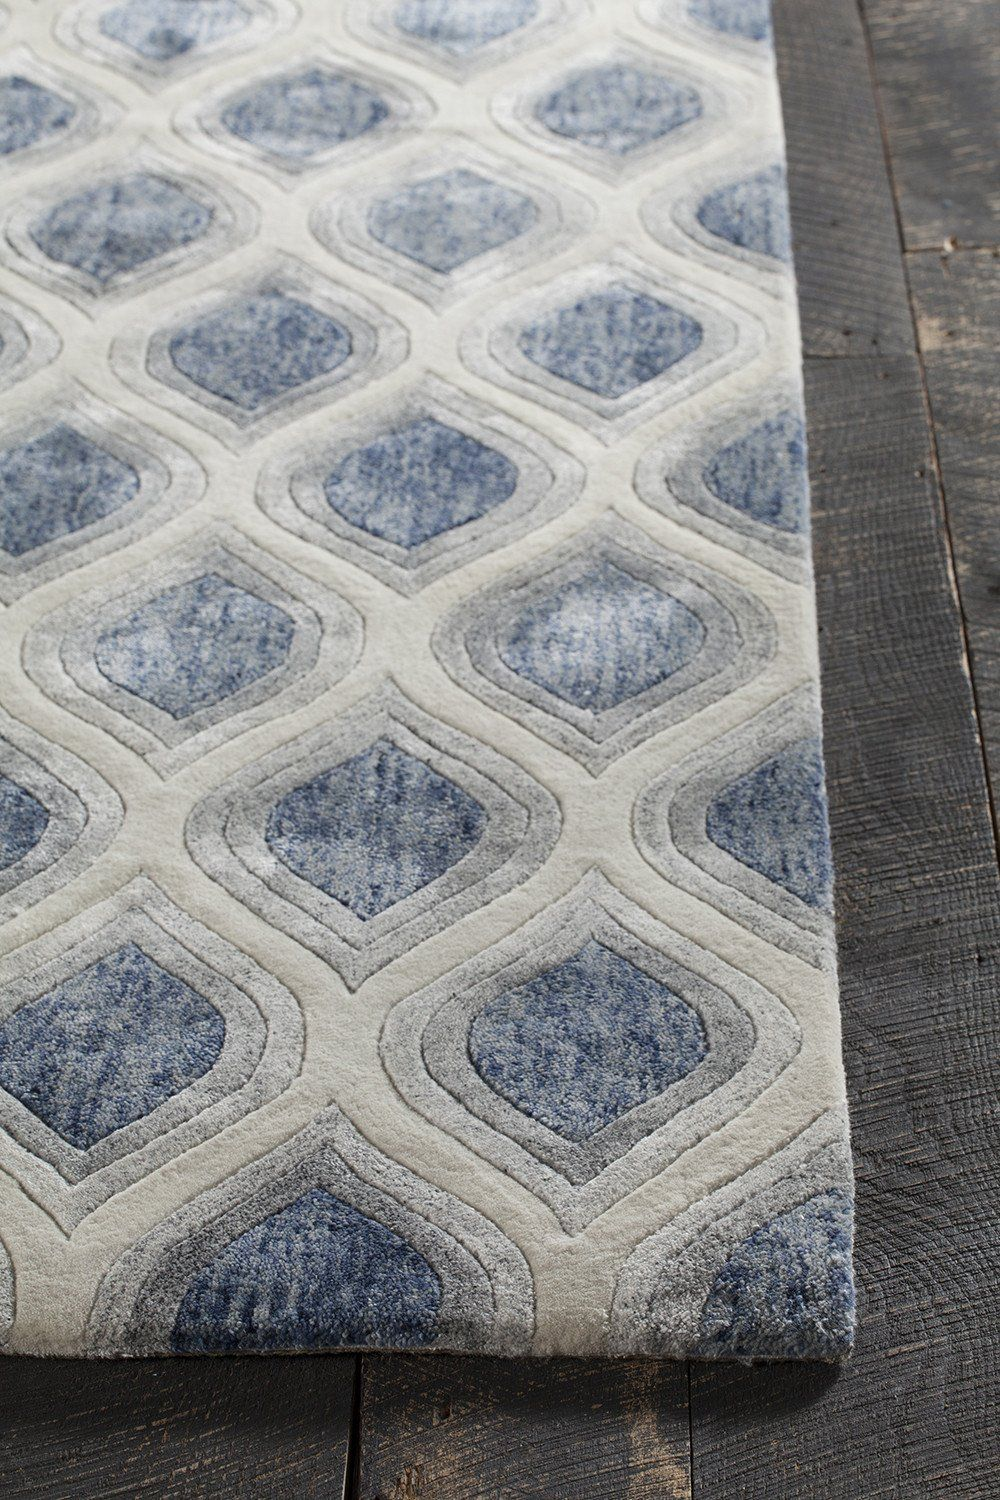 Clara Collection Hand Tufted Area Rug In Blue Grey White Design By Chandra Rugs Blue And White Rug Blue Grey Rug Blue Gray Area Rug